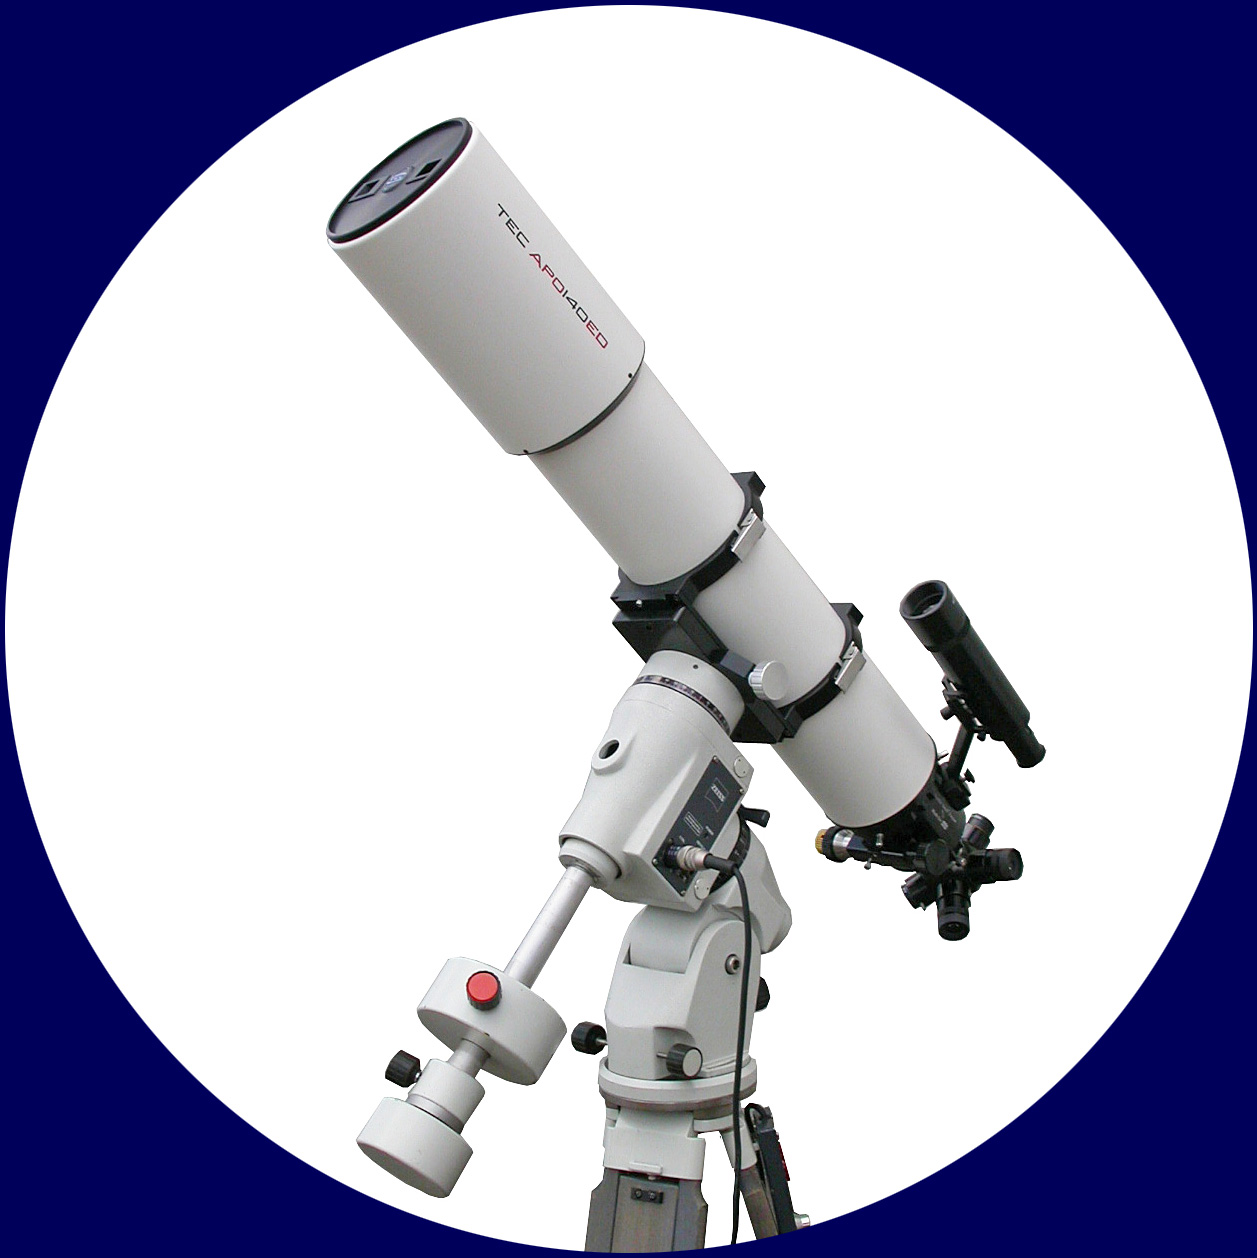 TEC - Telescope Engineering Company